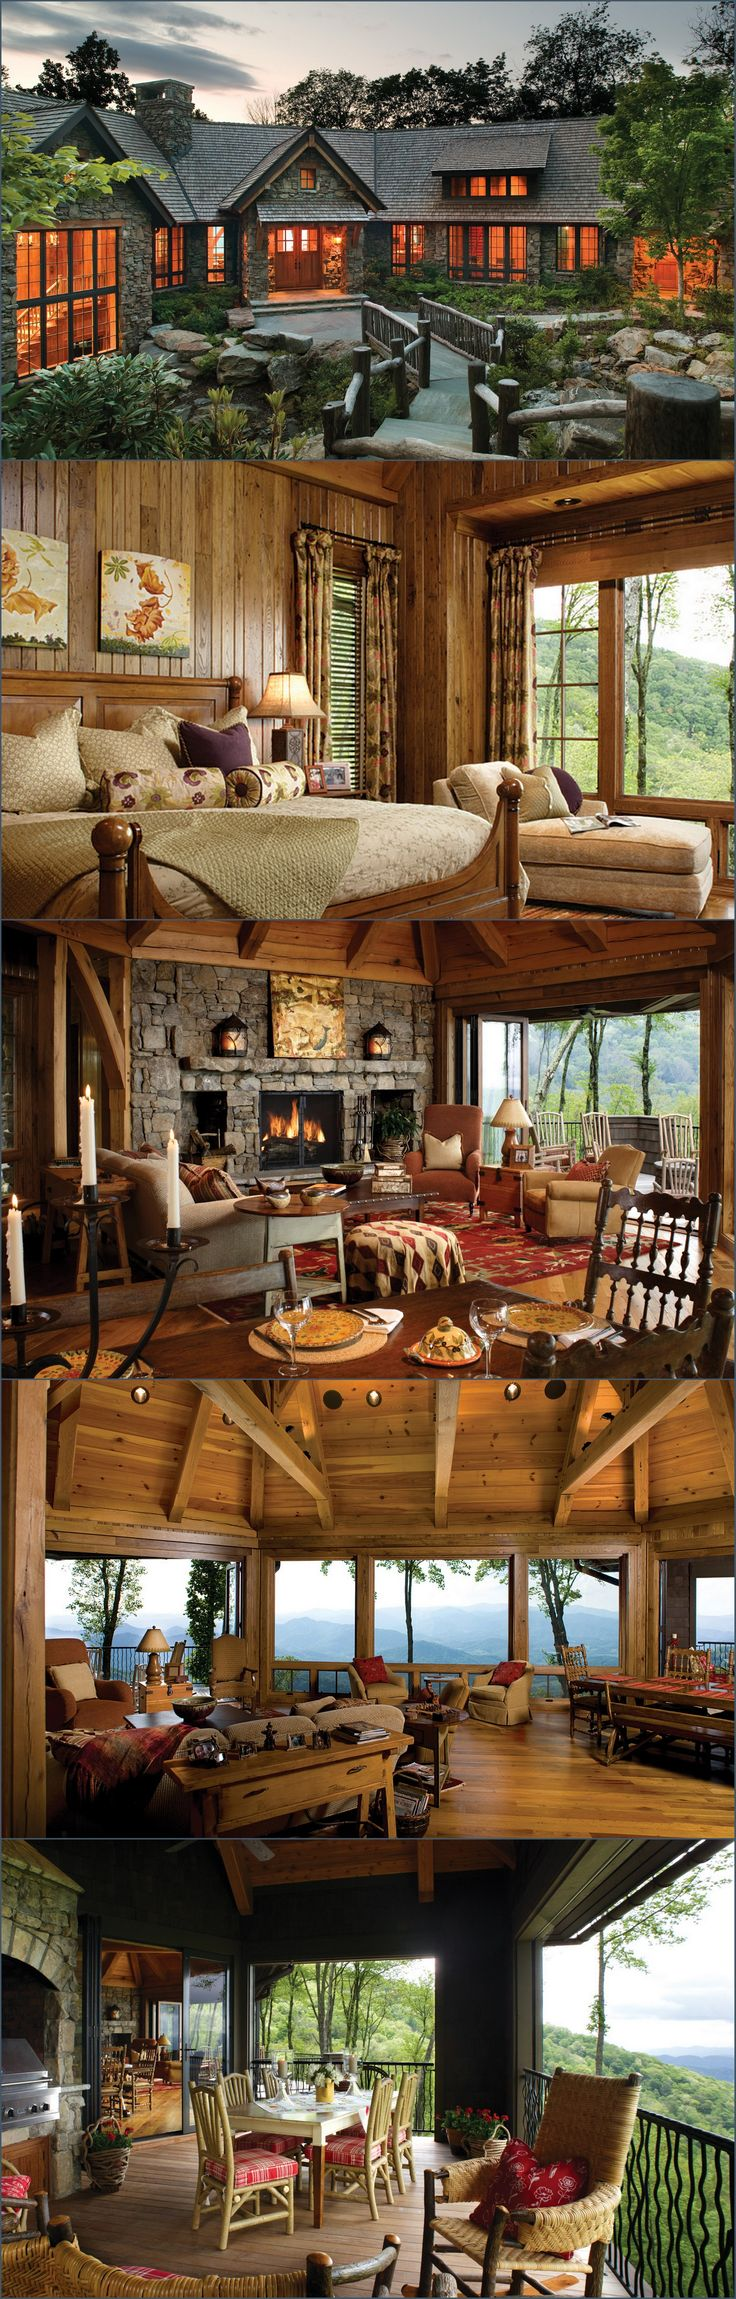 Outdoor Cabin Wall Decor : Best lodge style ideas on